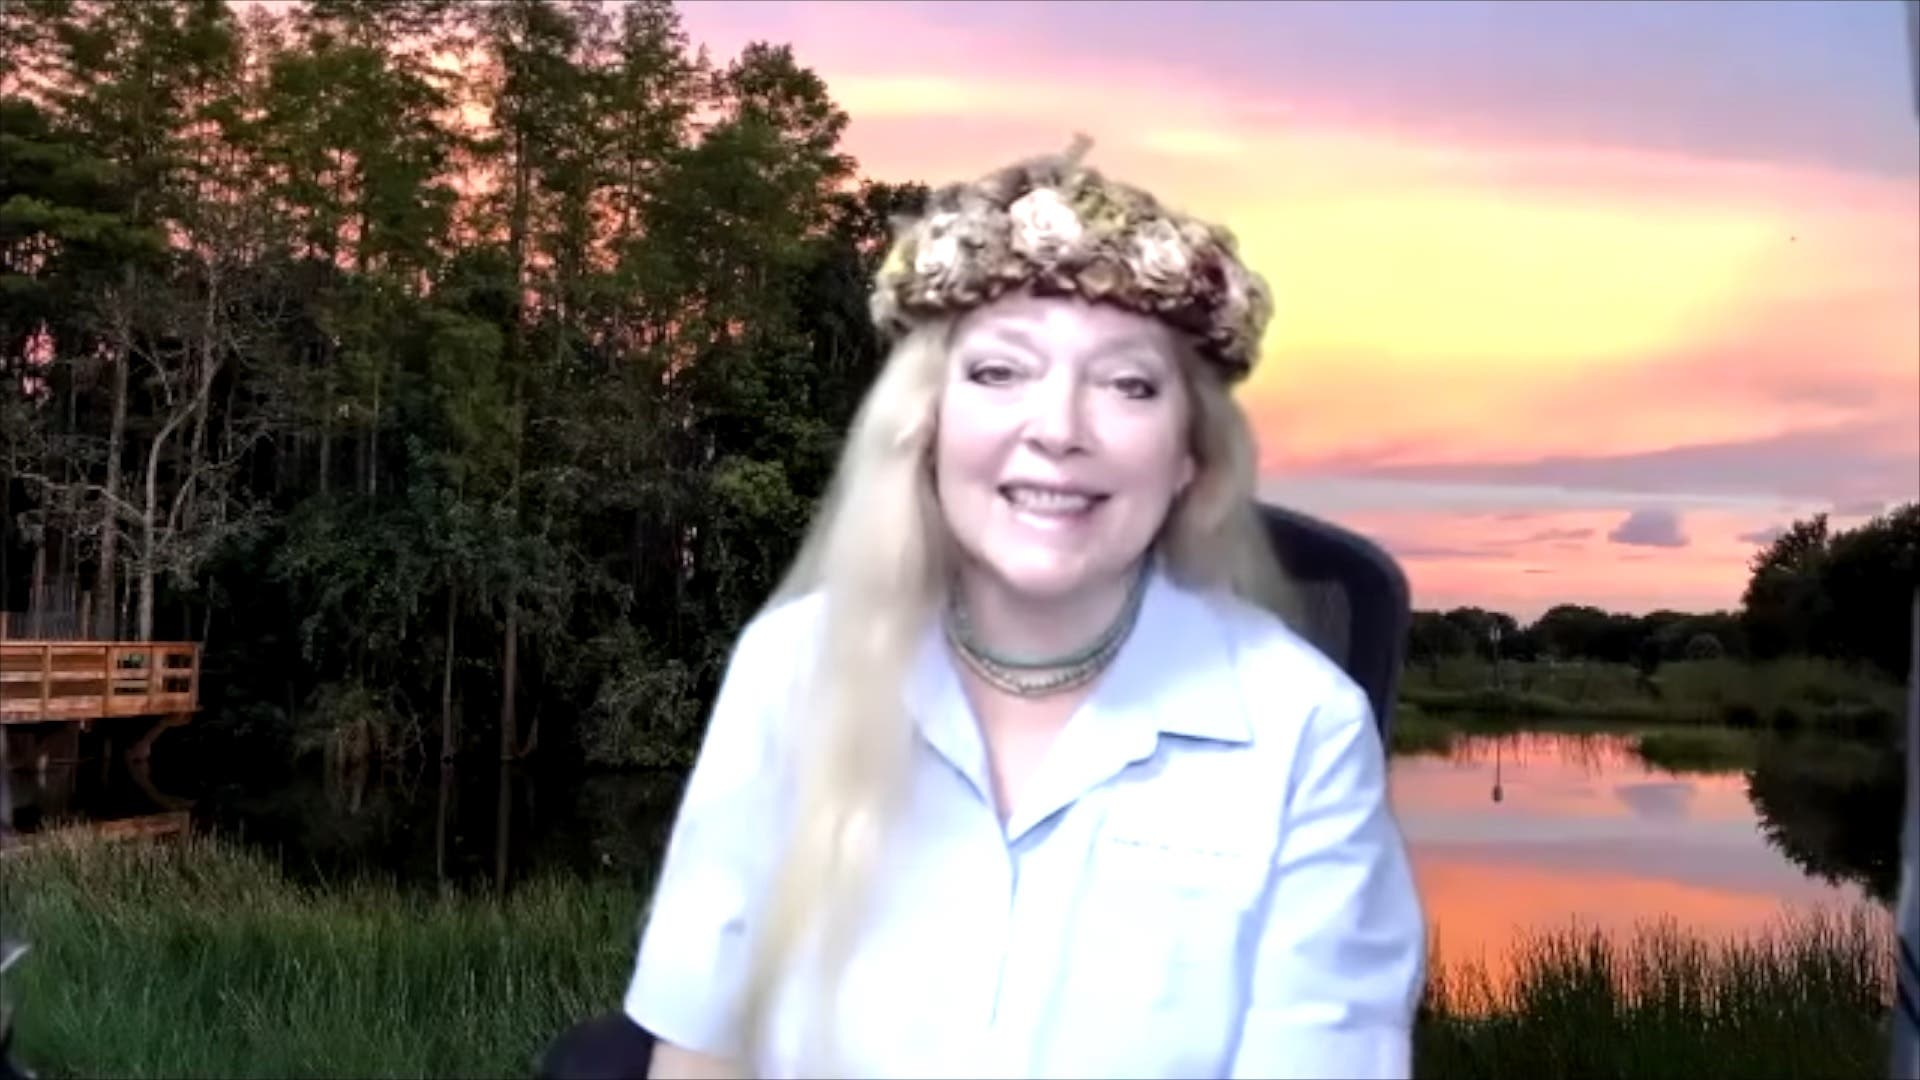 Carole Baskin during a YouTube interview. (Screengrab)